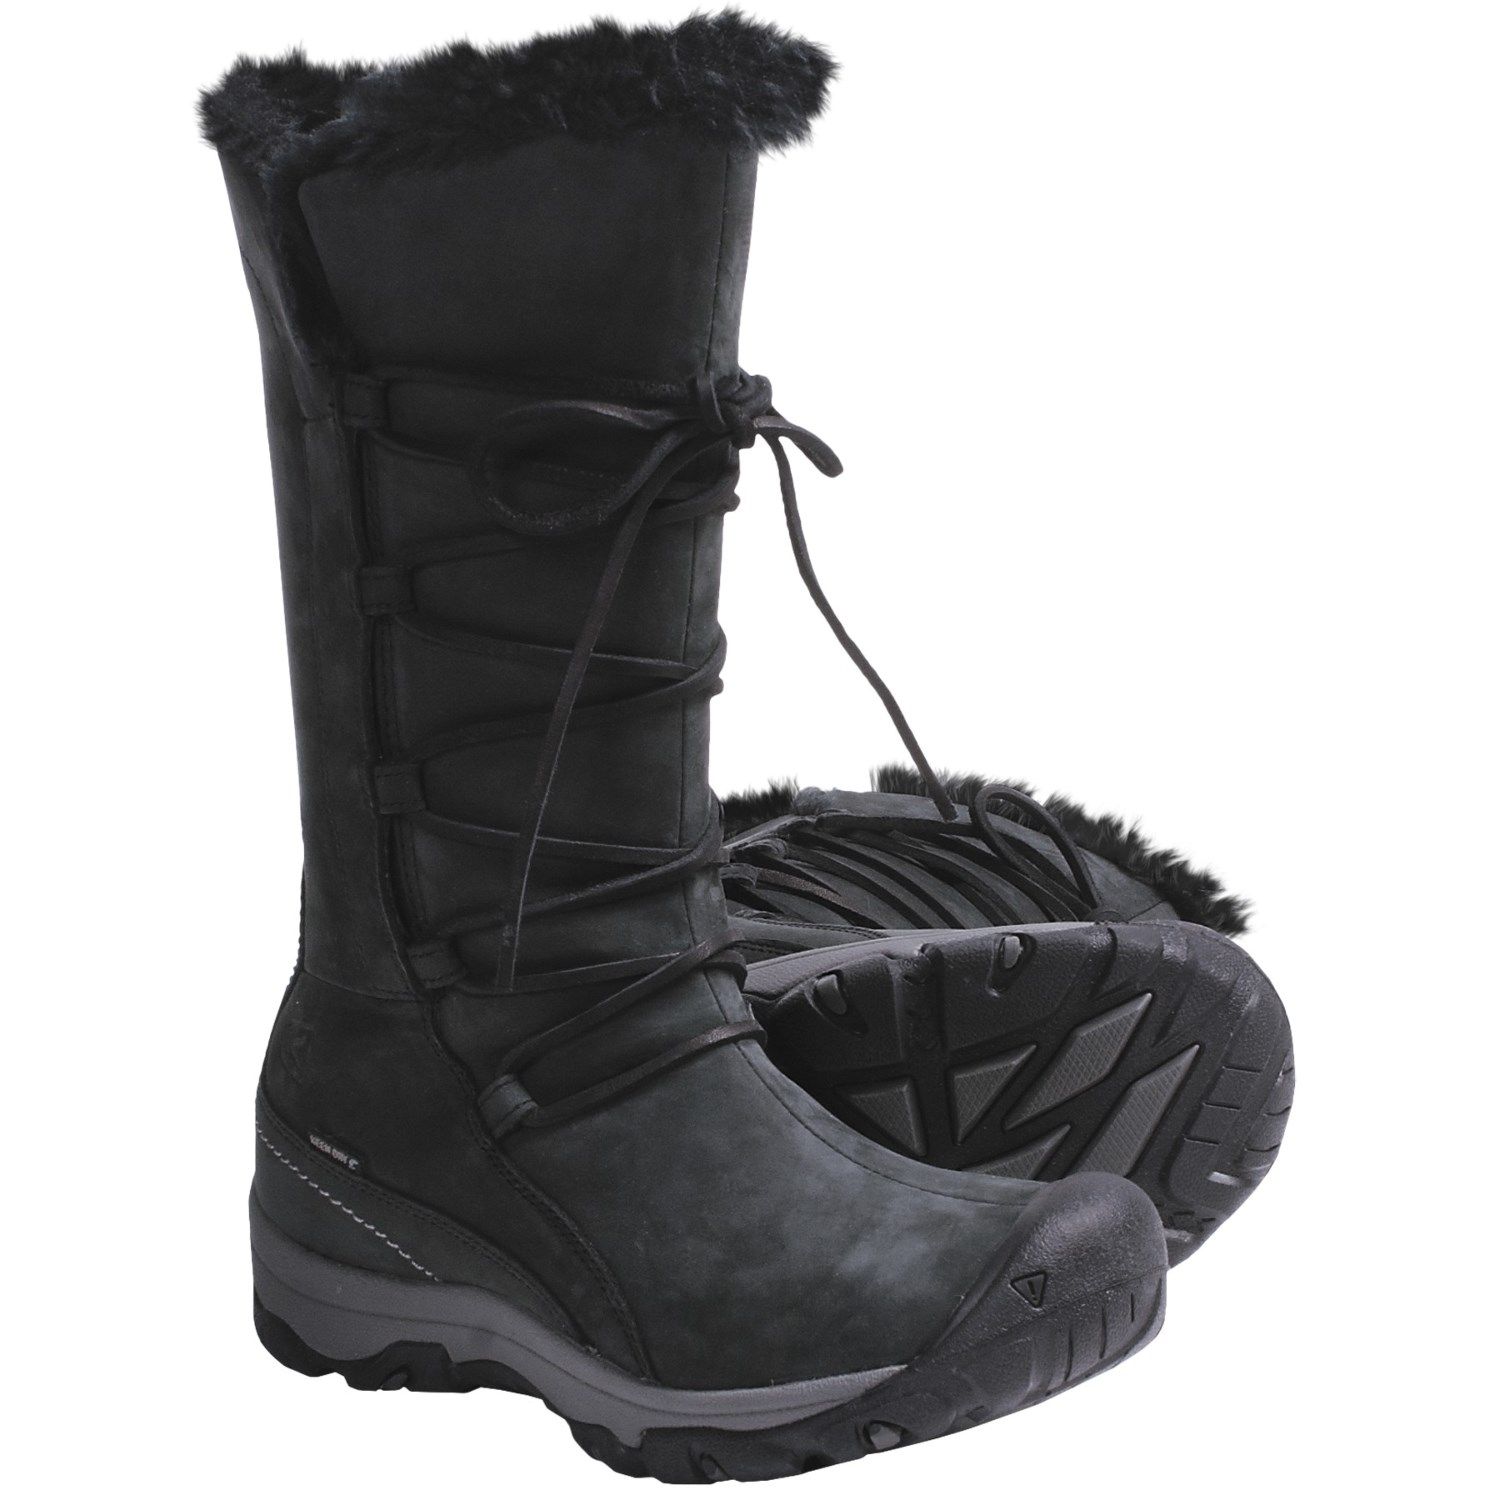 Keen Snow Boots Clearance | Santa Barbara Institute for